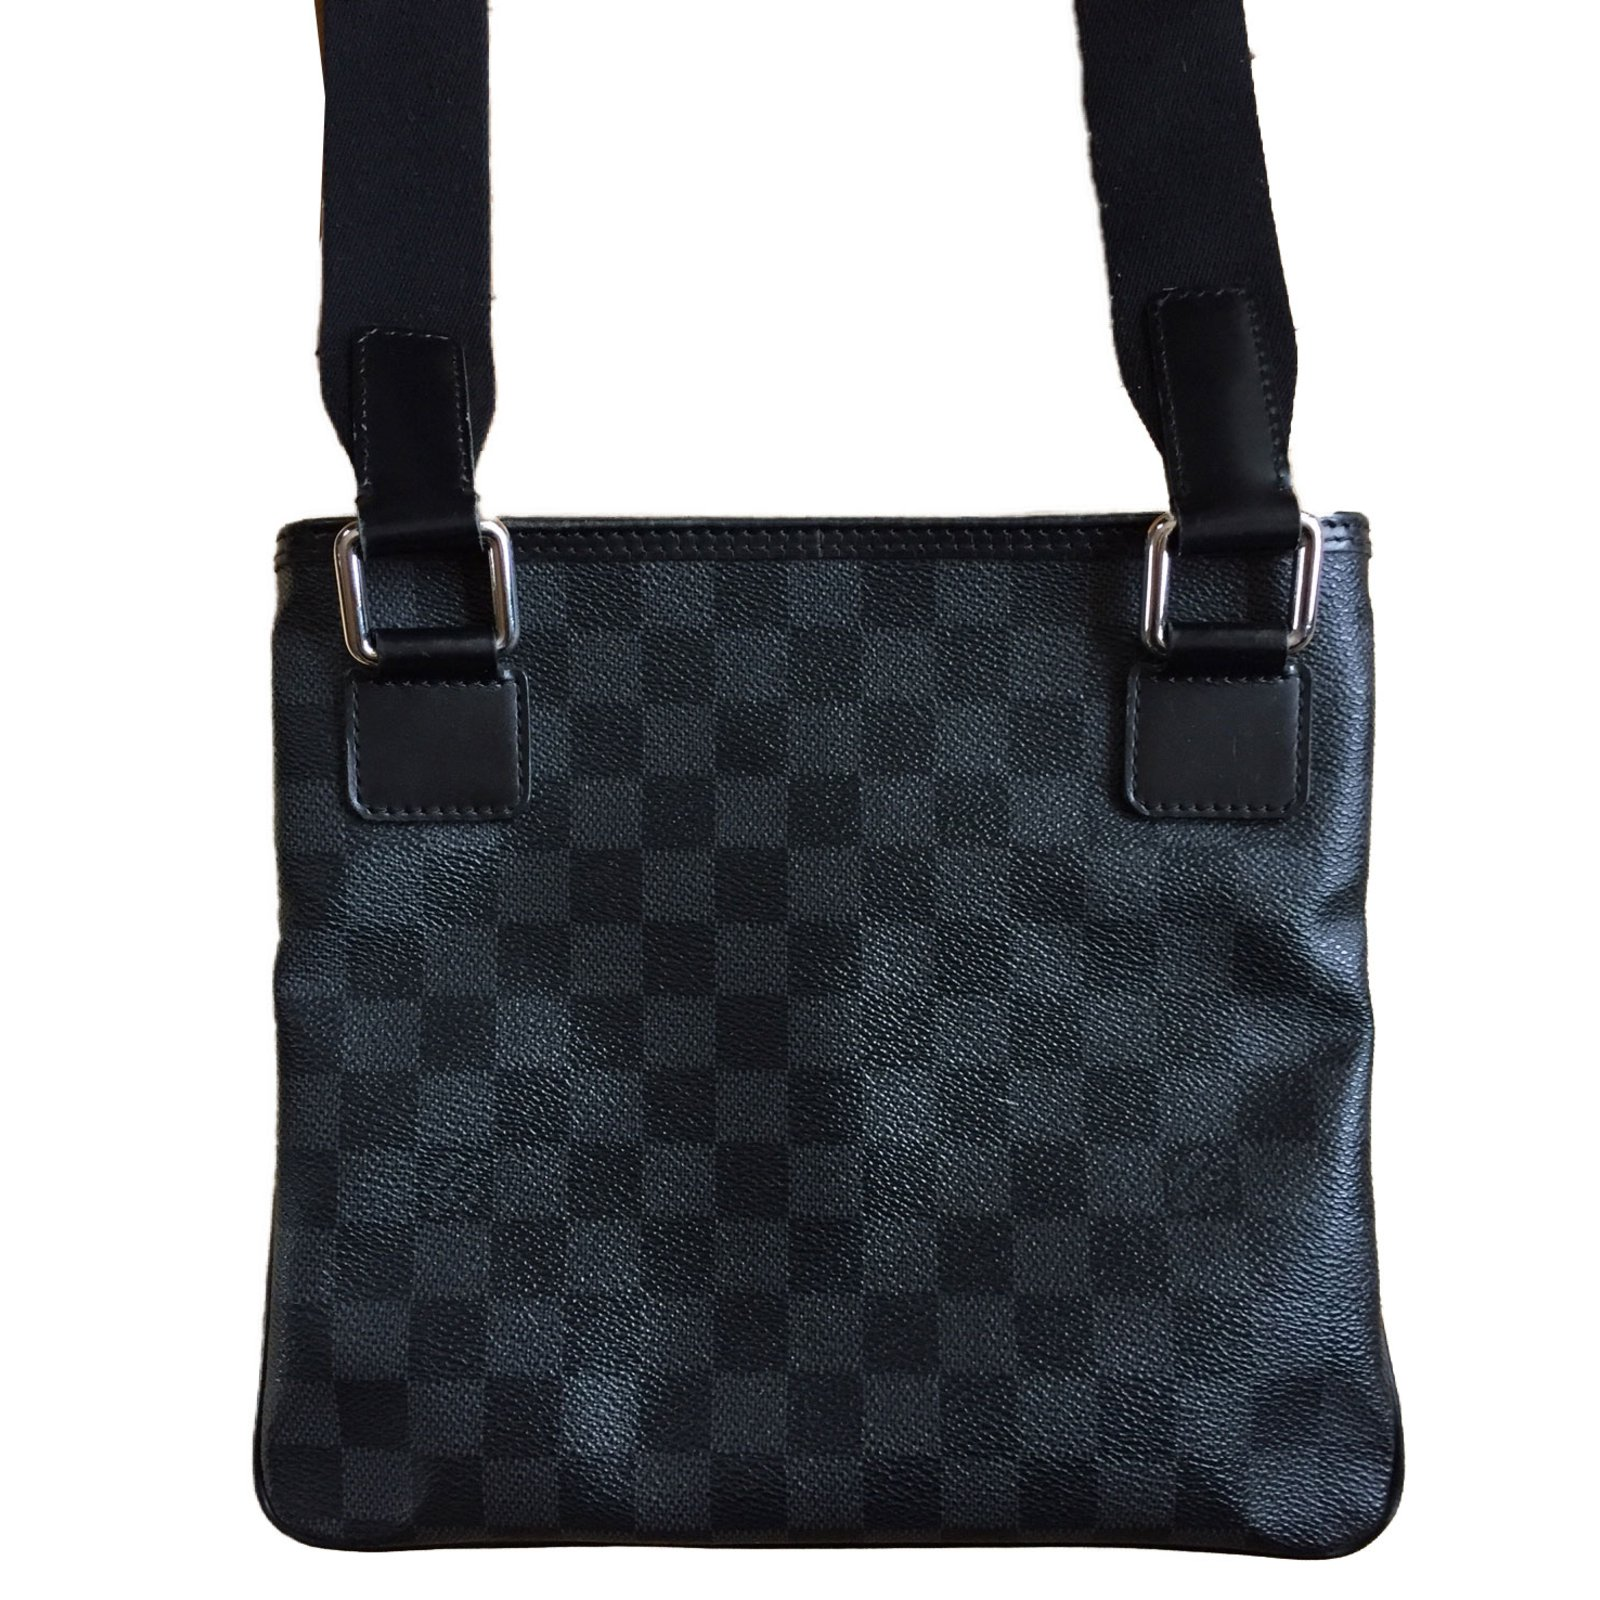 4220876b344 Sacoche Louis Vuitton Homme